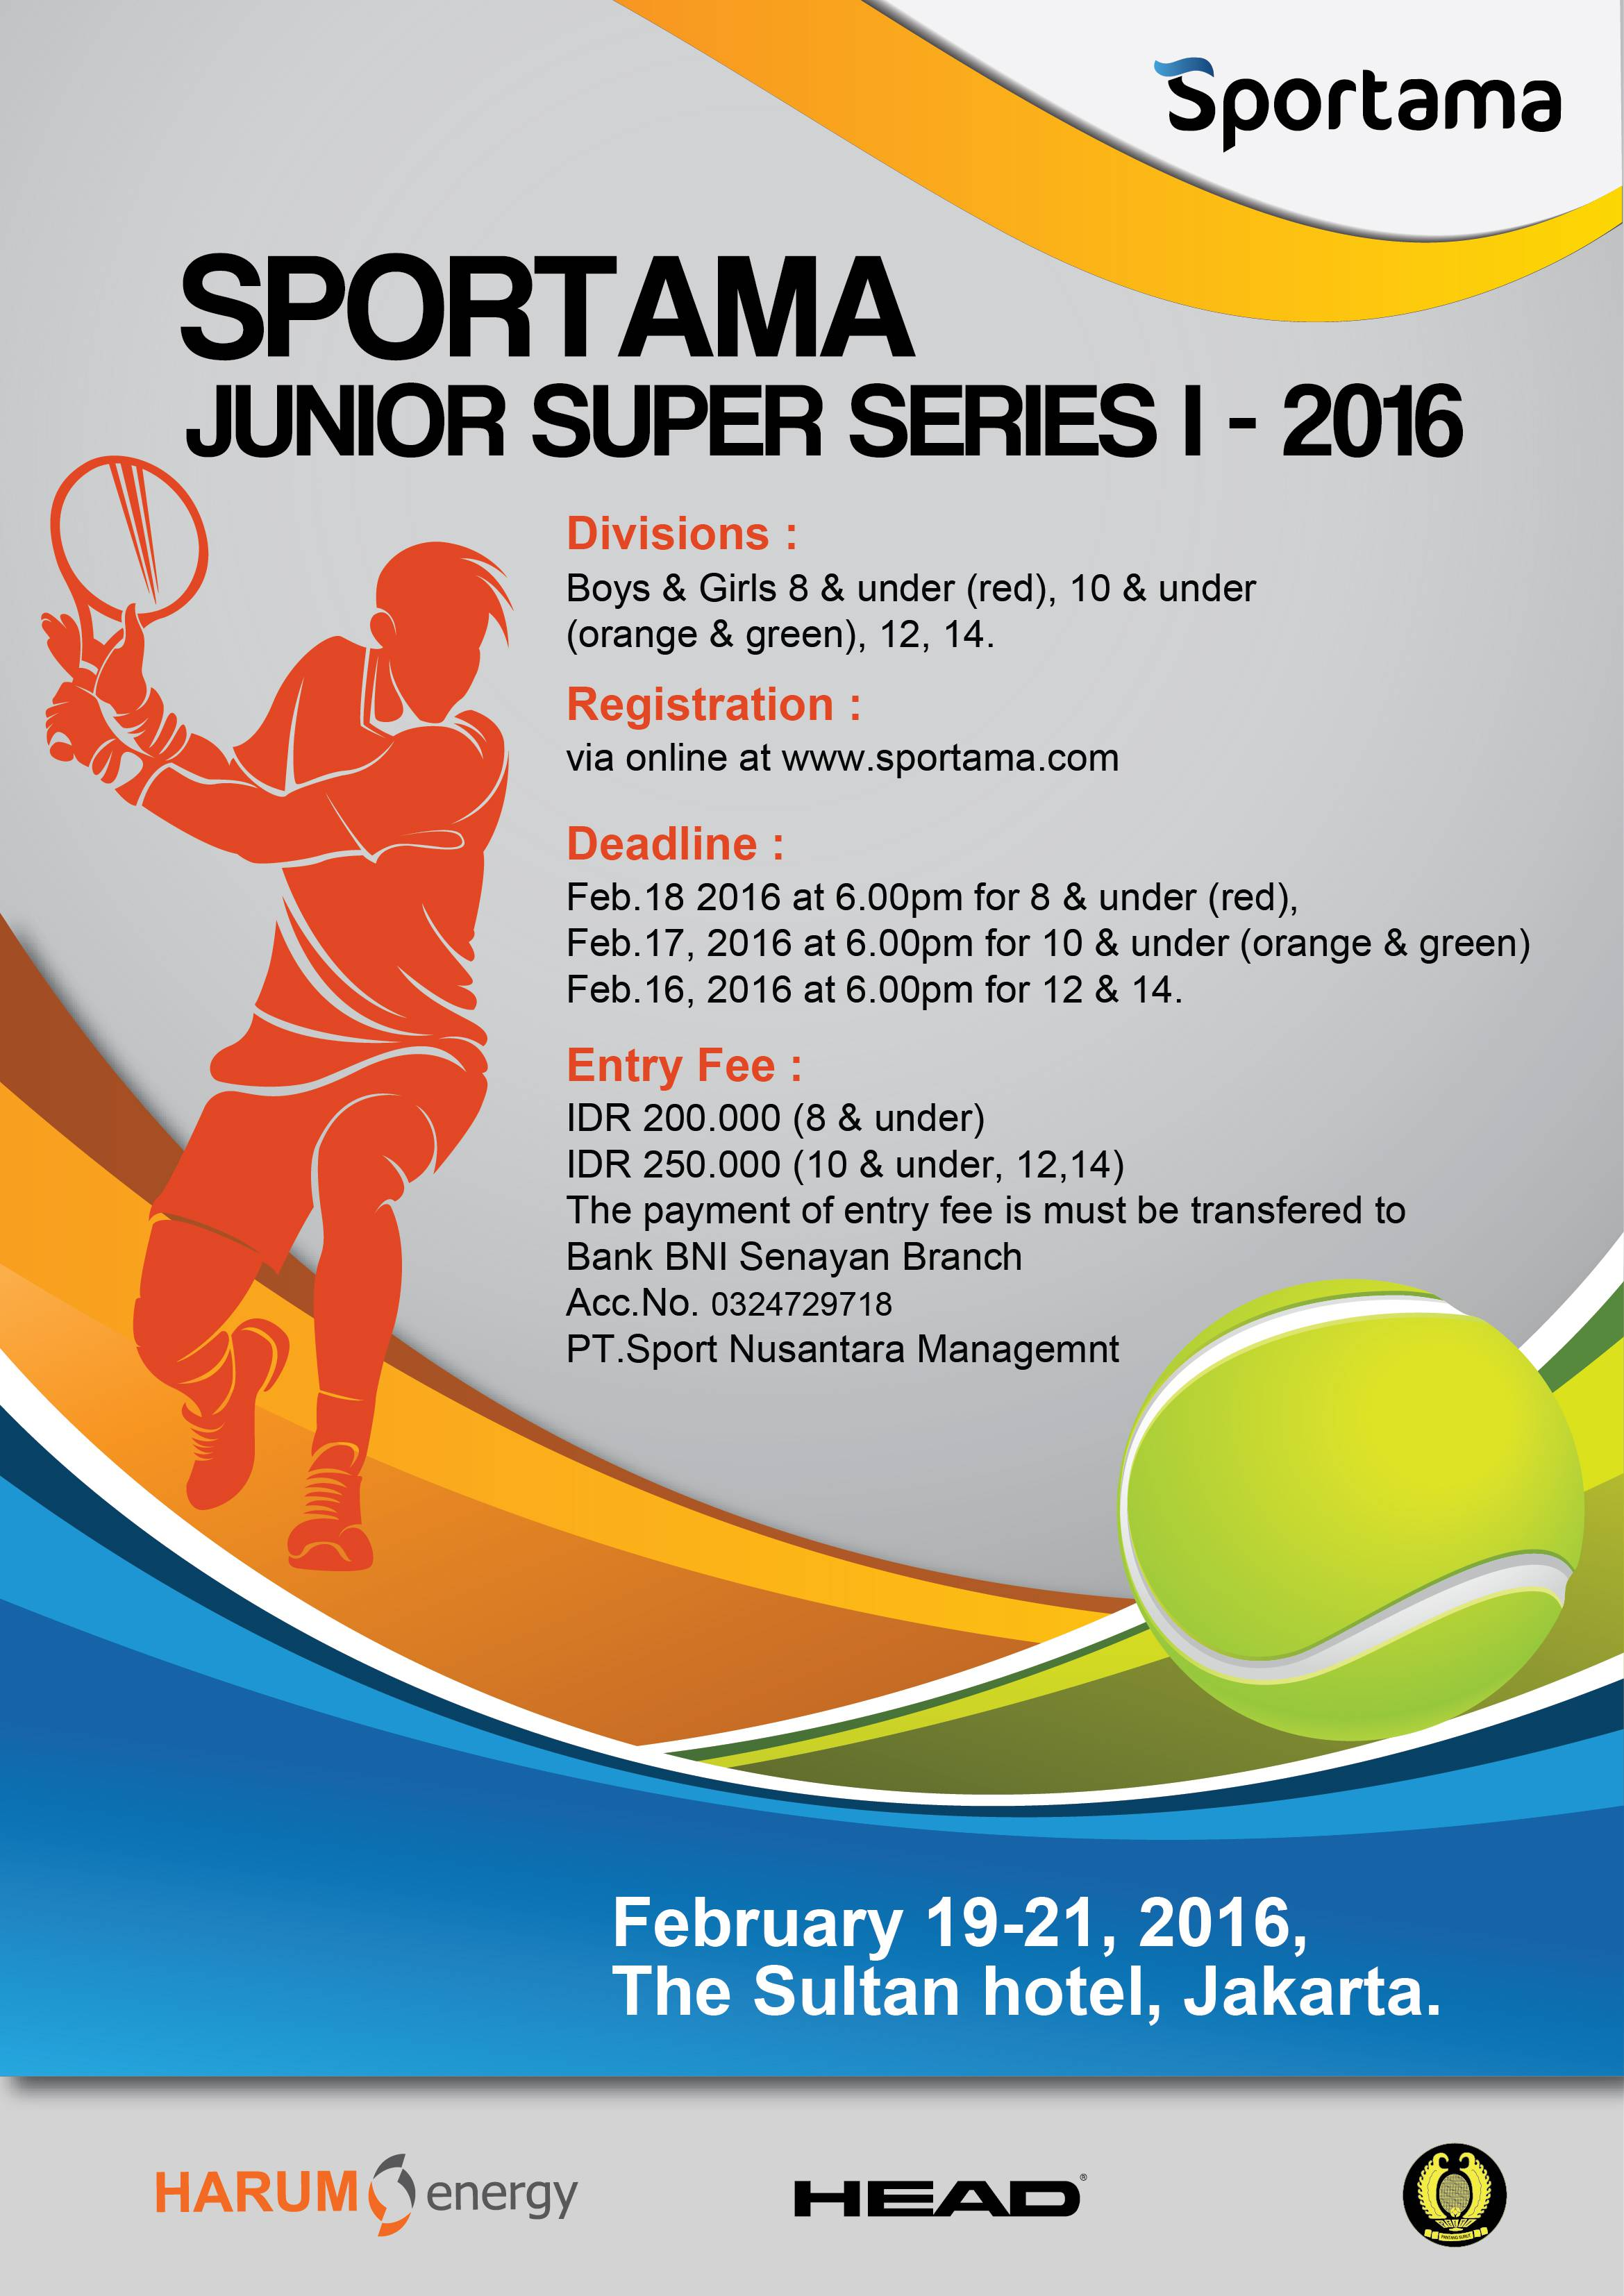 Sportama Junior Super Series I 2016